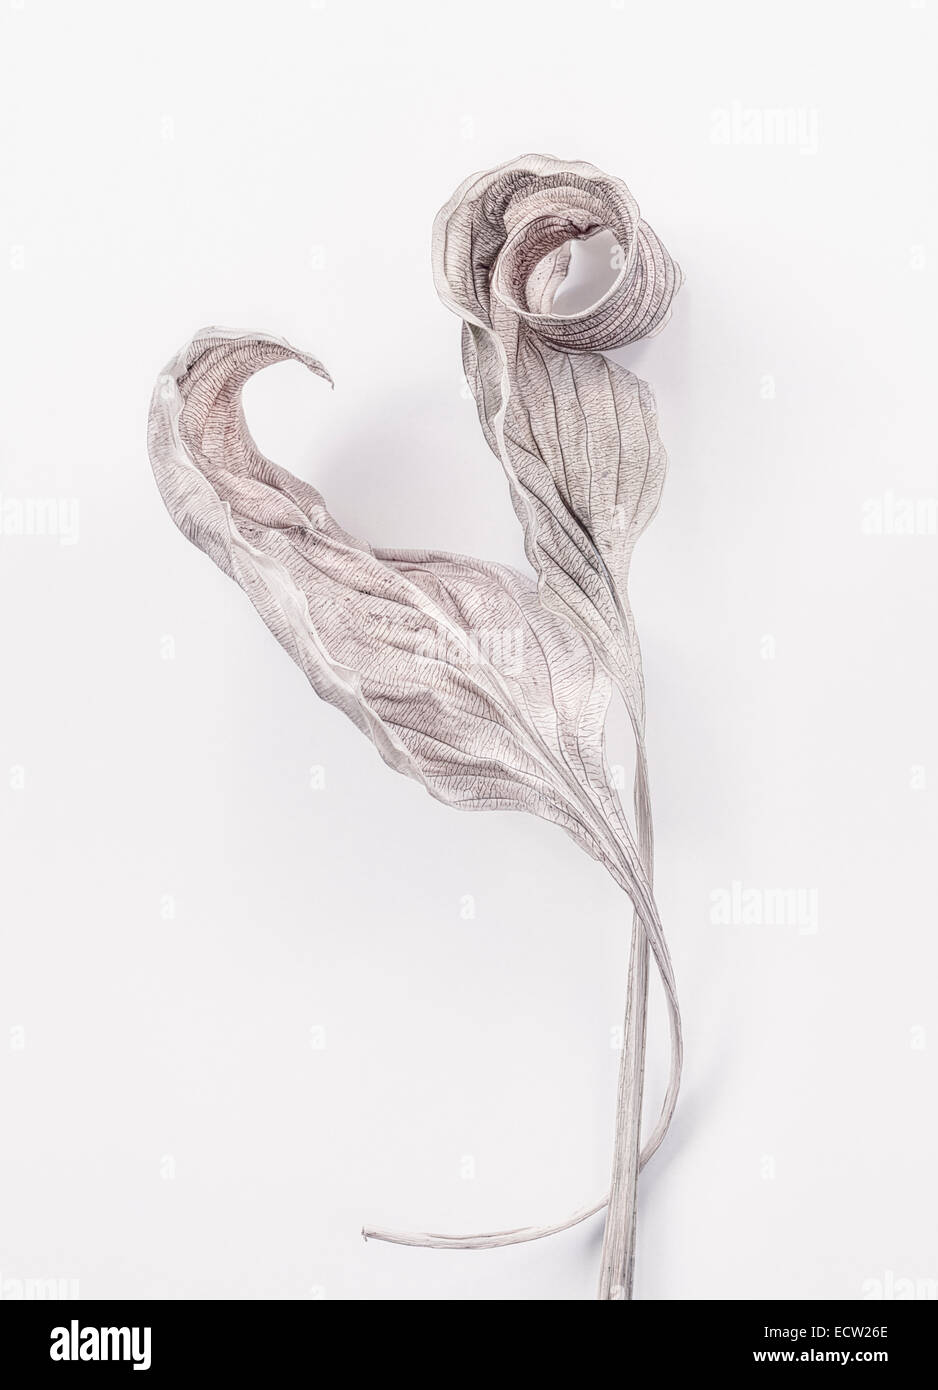 Two dry Hosta Leaves - Stock Image